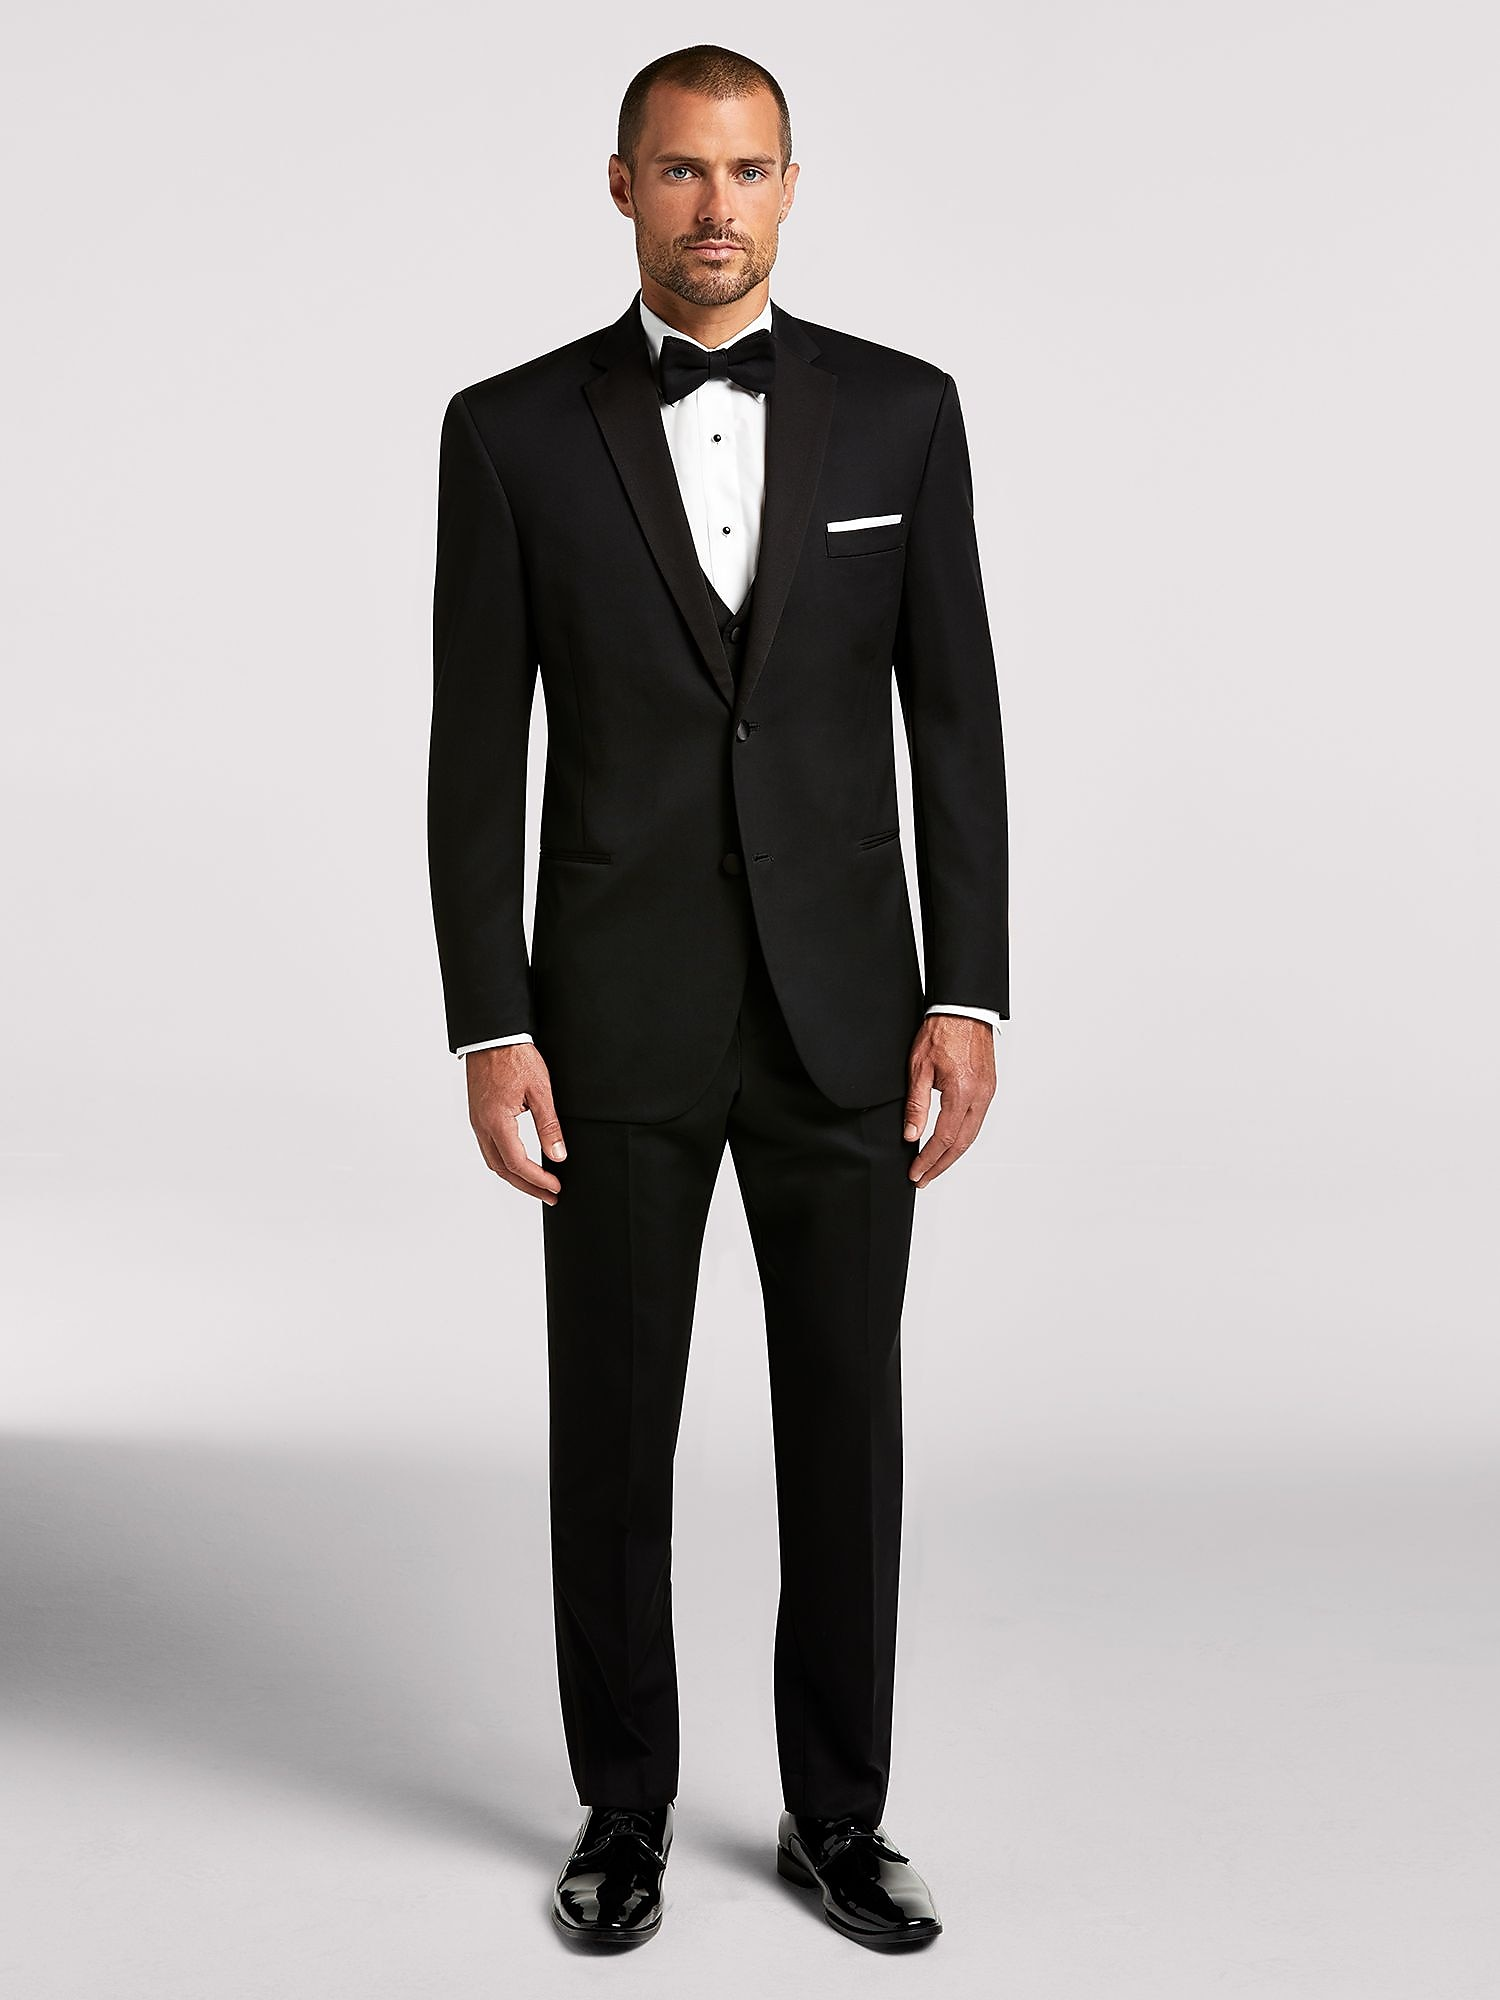 26f2772eec6 Tuxedo Rental · TUXEDOS AND SUITS · Weddings · Prom ...